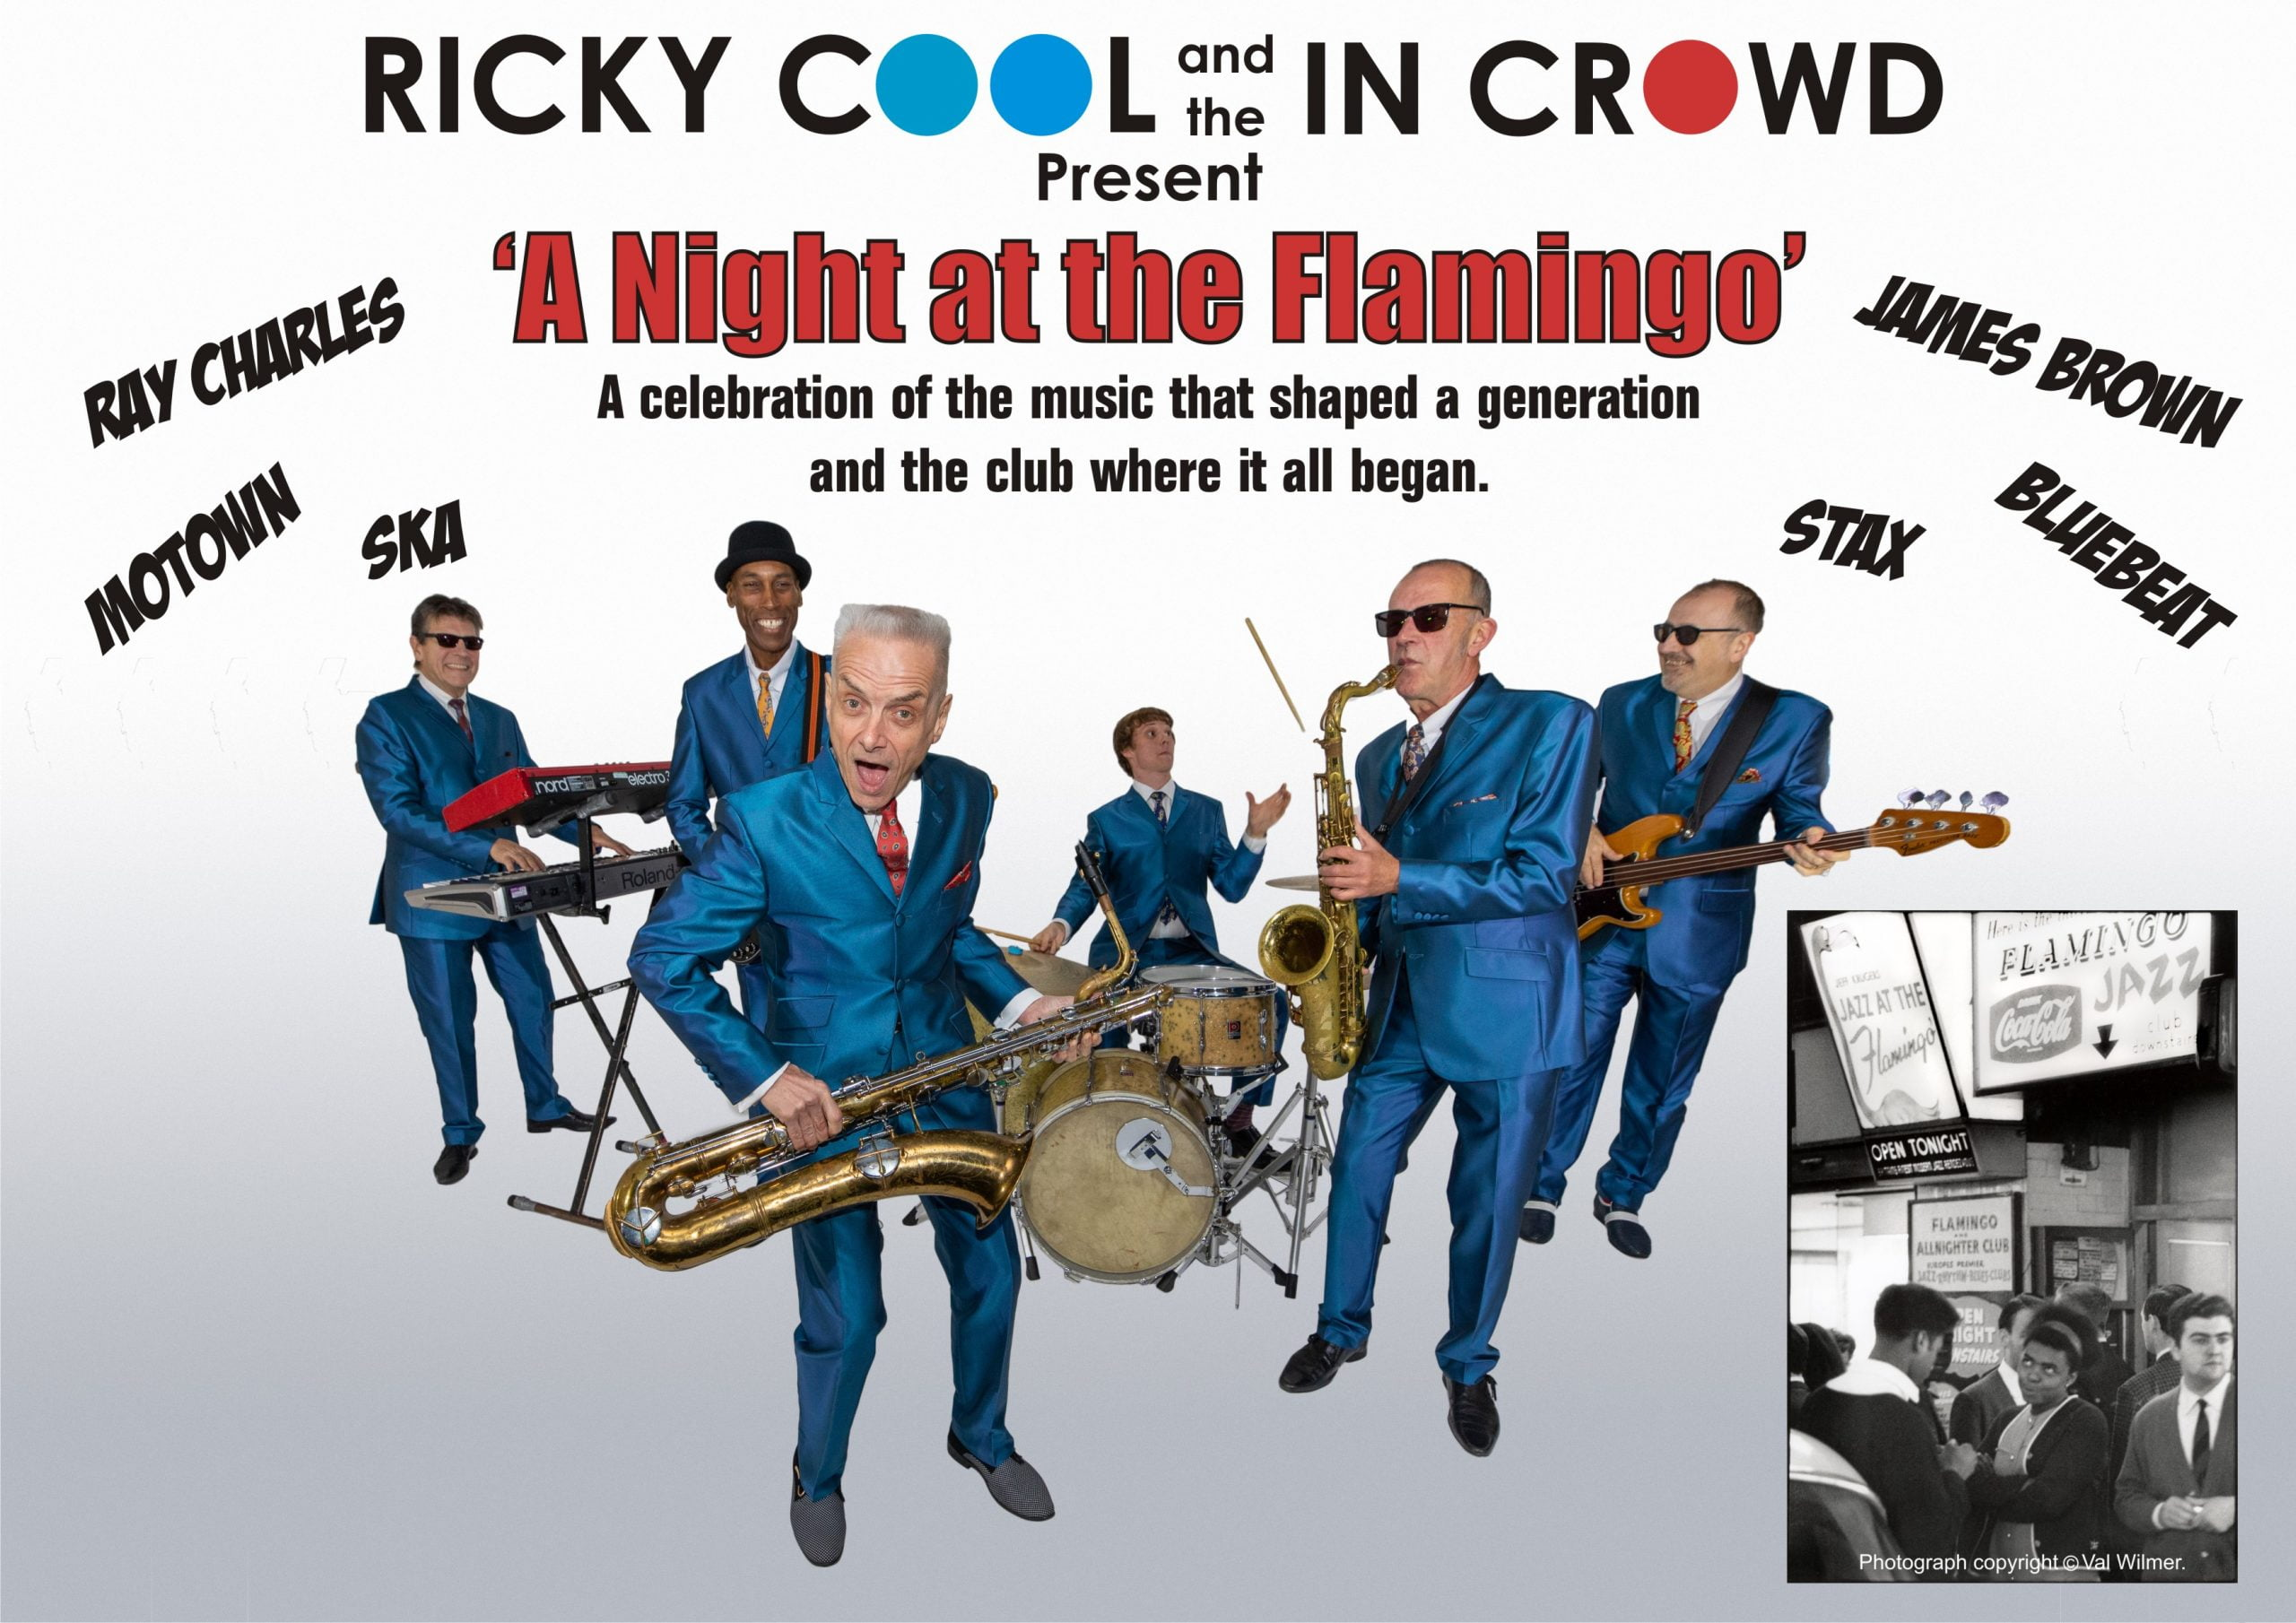 Ricky Cool & The In Crowd present: A NIGHT AT THE FLAMINGO